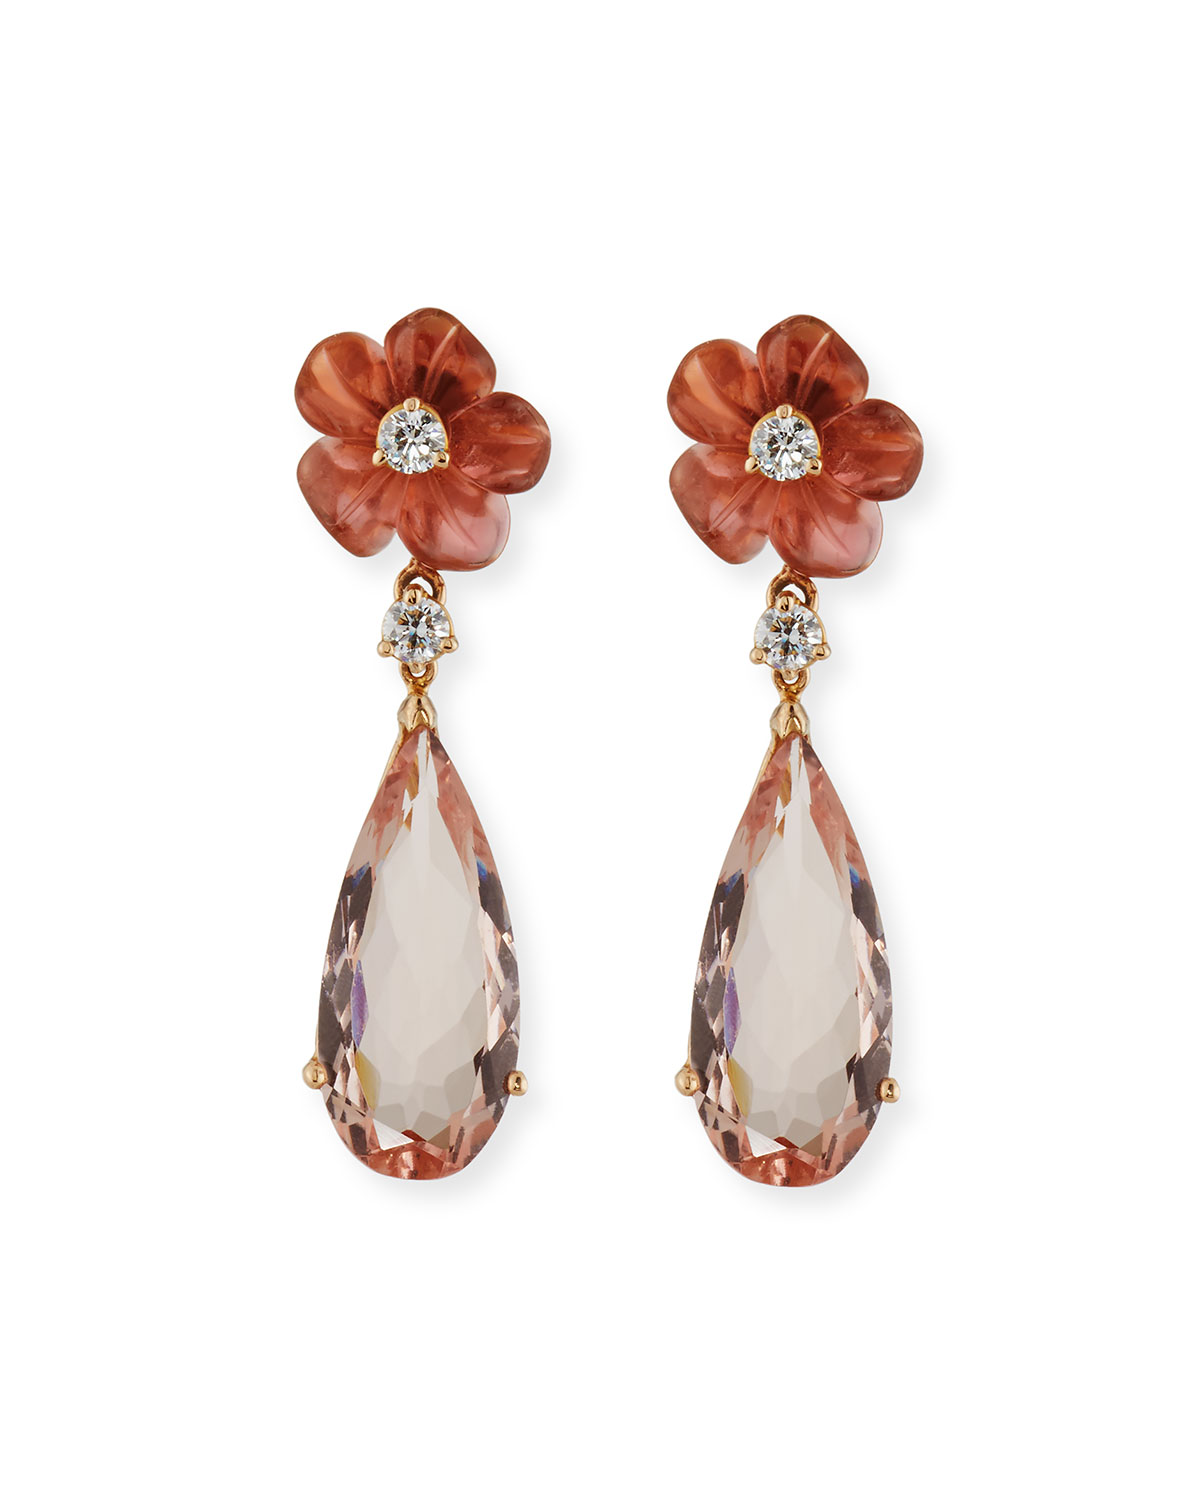 RINA LIMOR Pink Tourmaline Flower & Morganite Drop Earrings With Diamonds